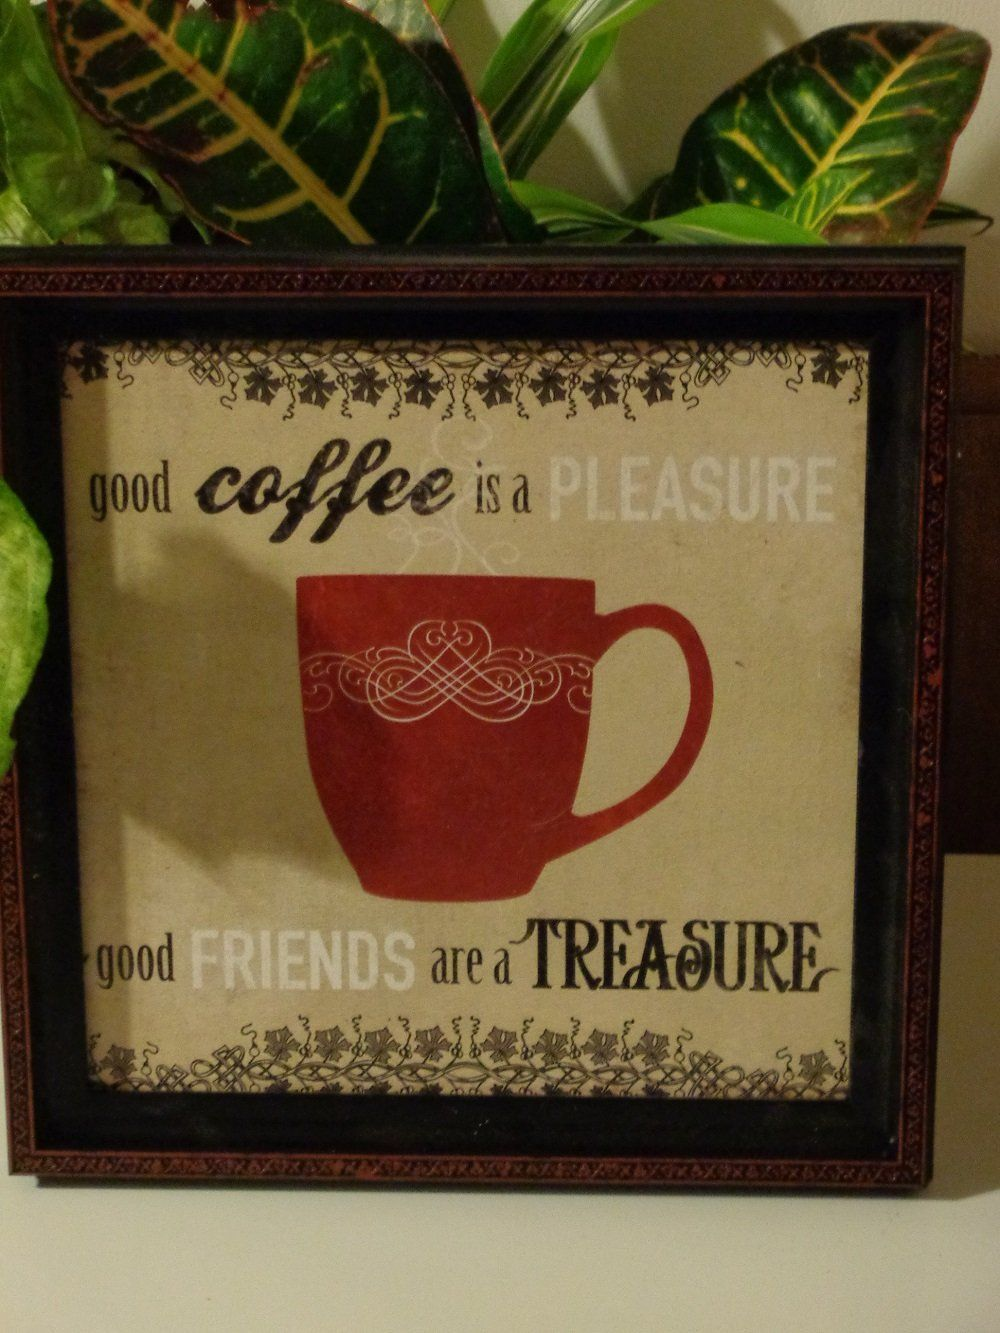 Coffeecupkitchensignwallplaque only 1795 wake up smell this kitchen wall decor features a decorative red coffee cup and has the caption good coffee is a pleasure amipublicfo Image collections